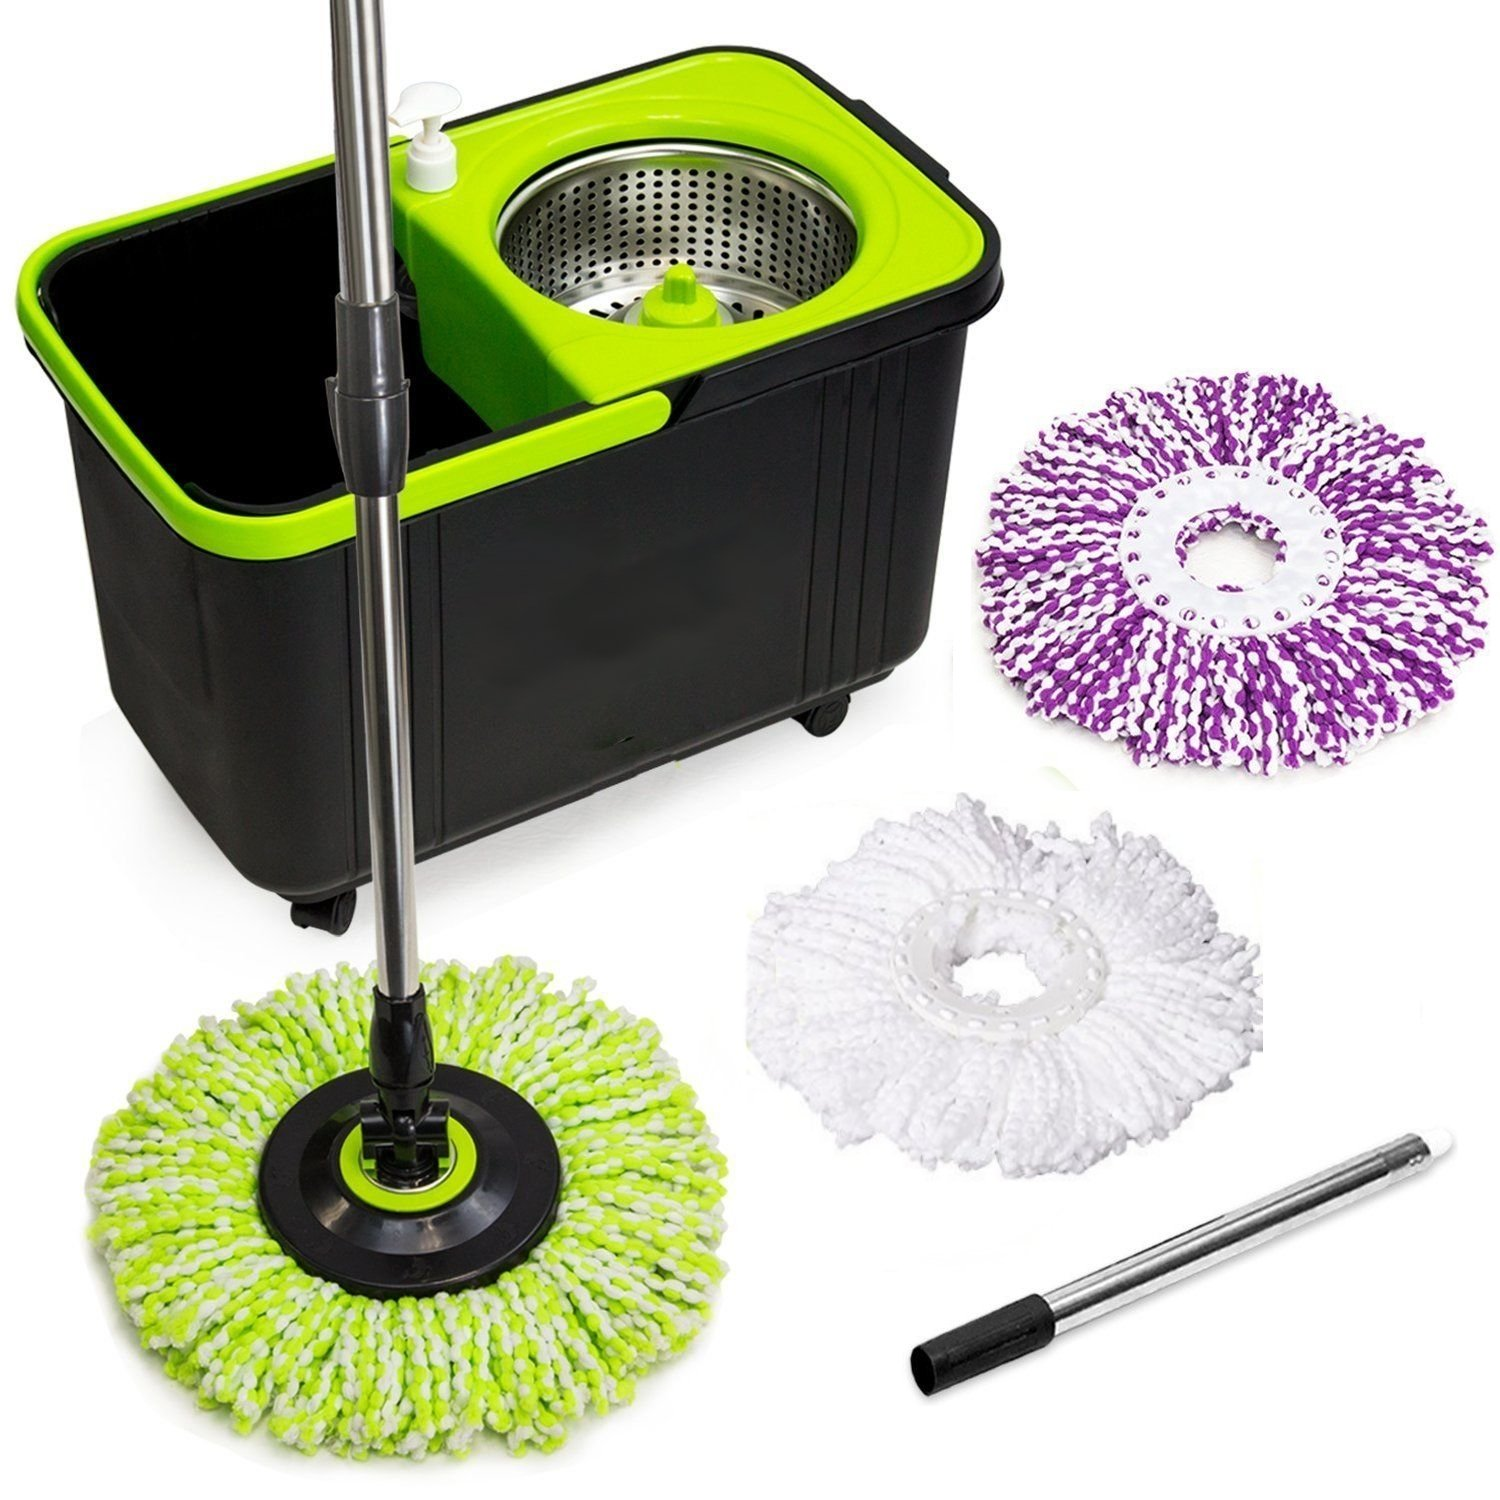 Simpli-Magic 79117 Stainless Steel Spin Mop with 3 Microfiber Mop Head Refills, 4 Wheels, Soap Dispenser and Extendable Pole